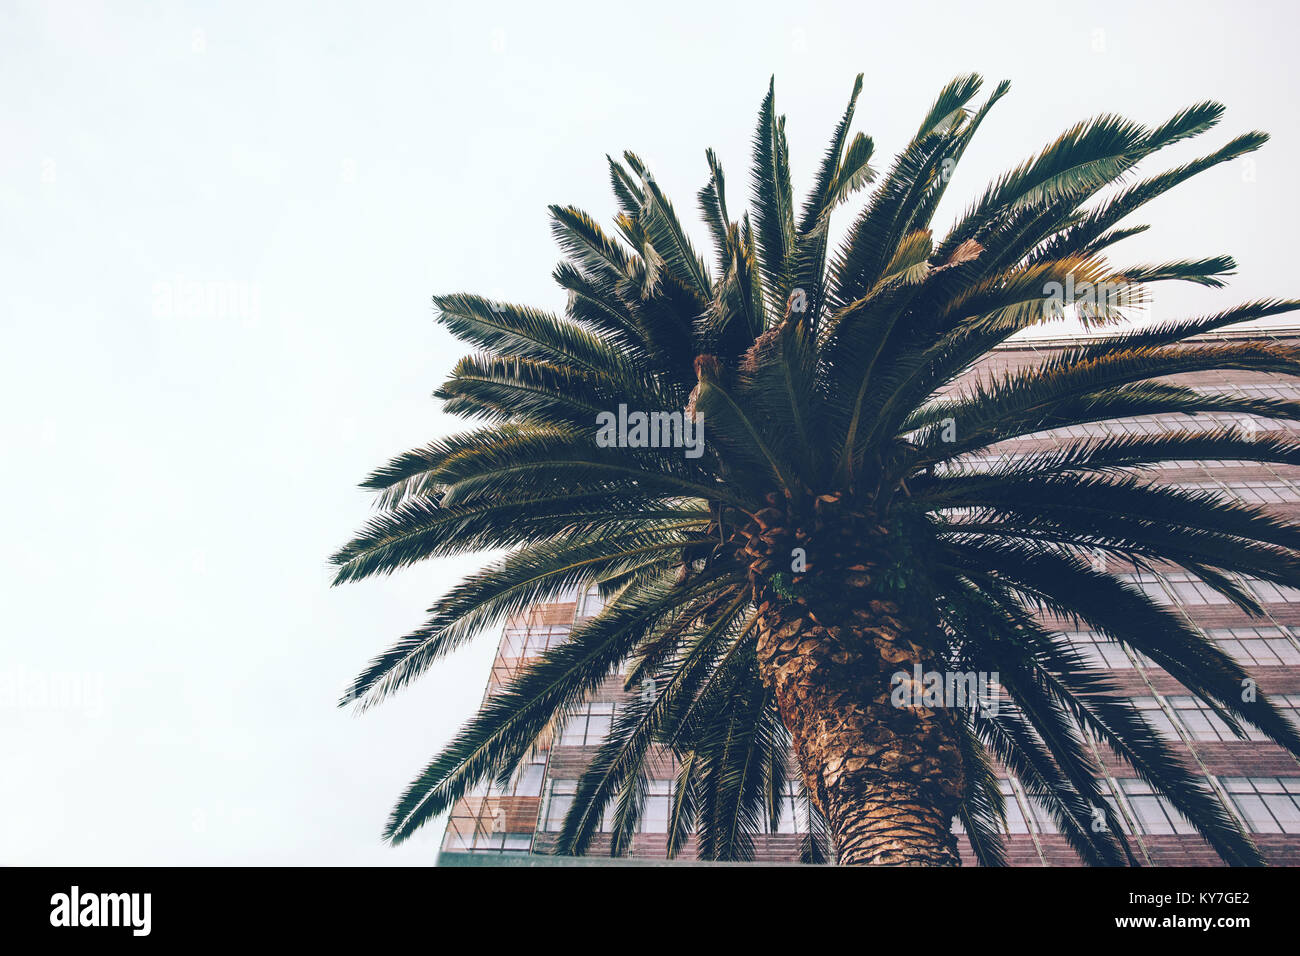 Palm tree in tropical city minimal landscape background - Stock Image